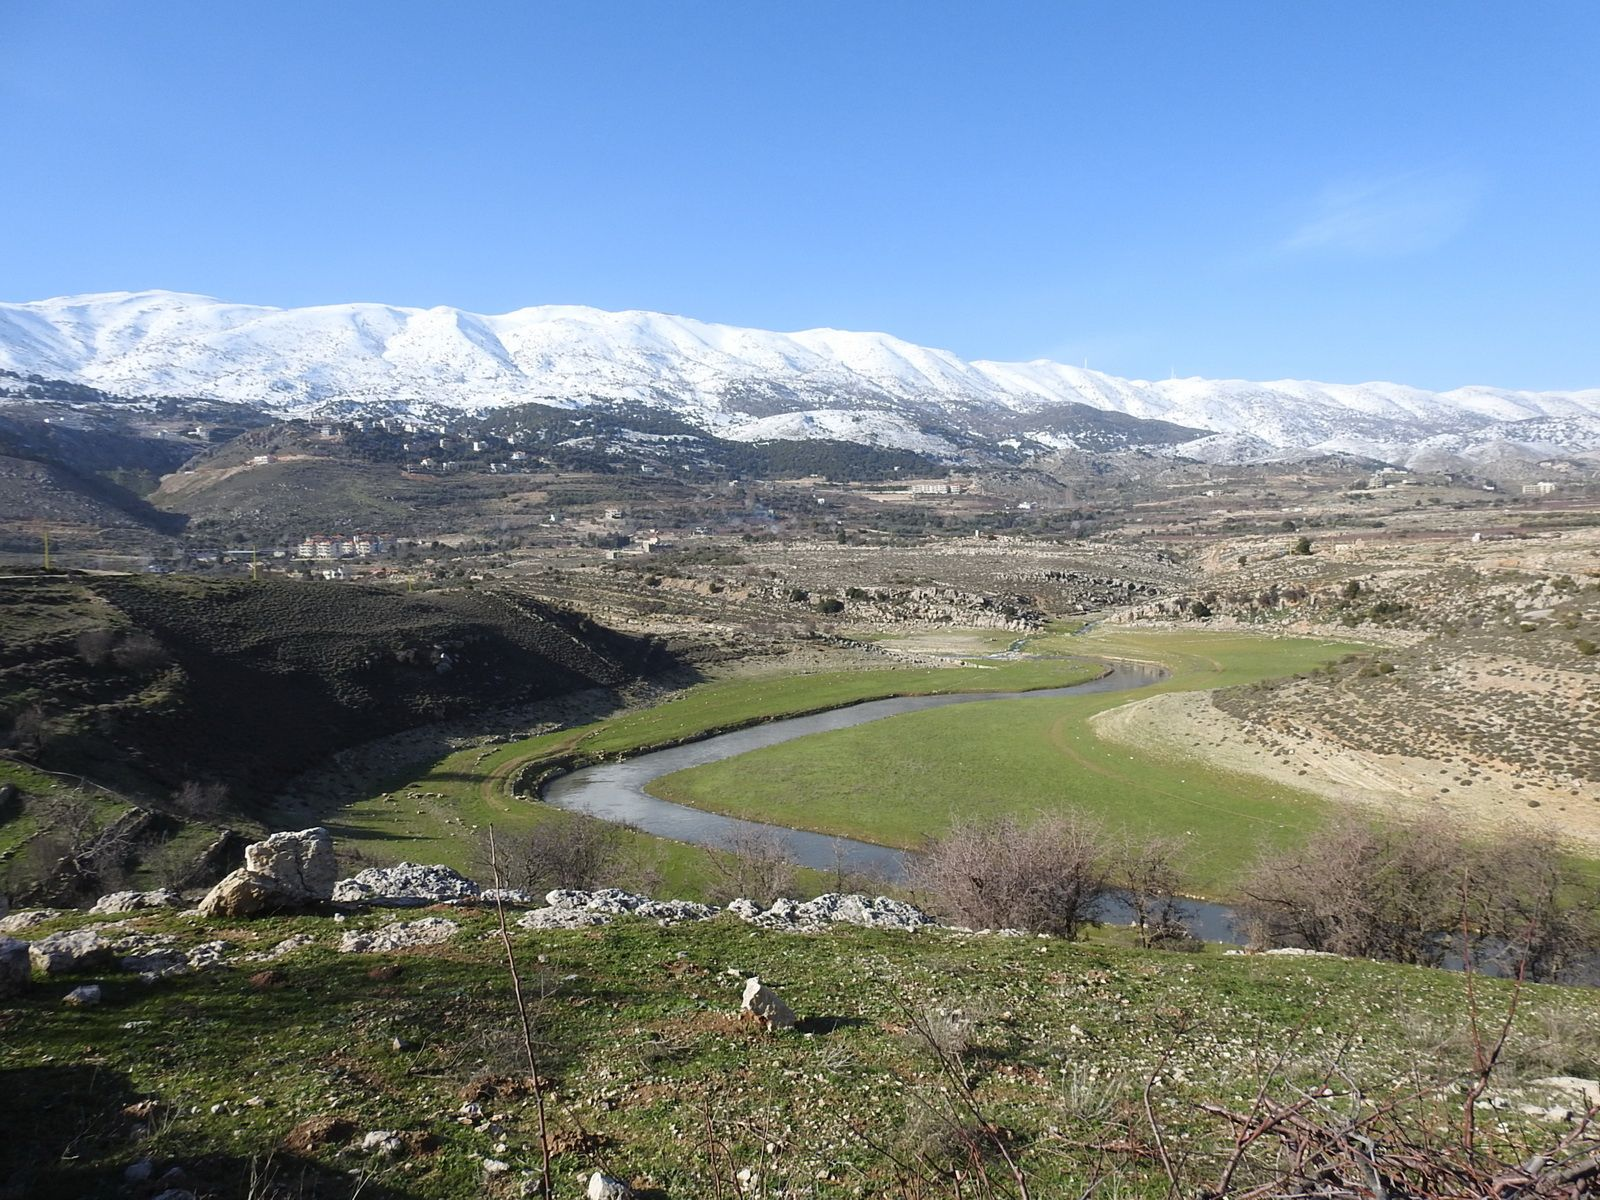 Photo: Society for the Protection of Nature in Lebanon (SPNL)